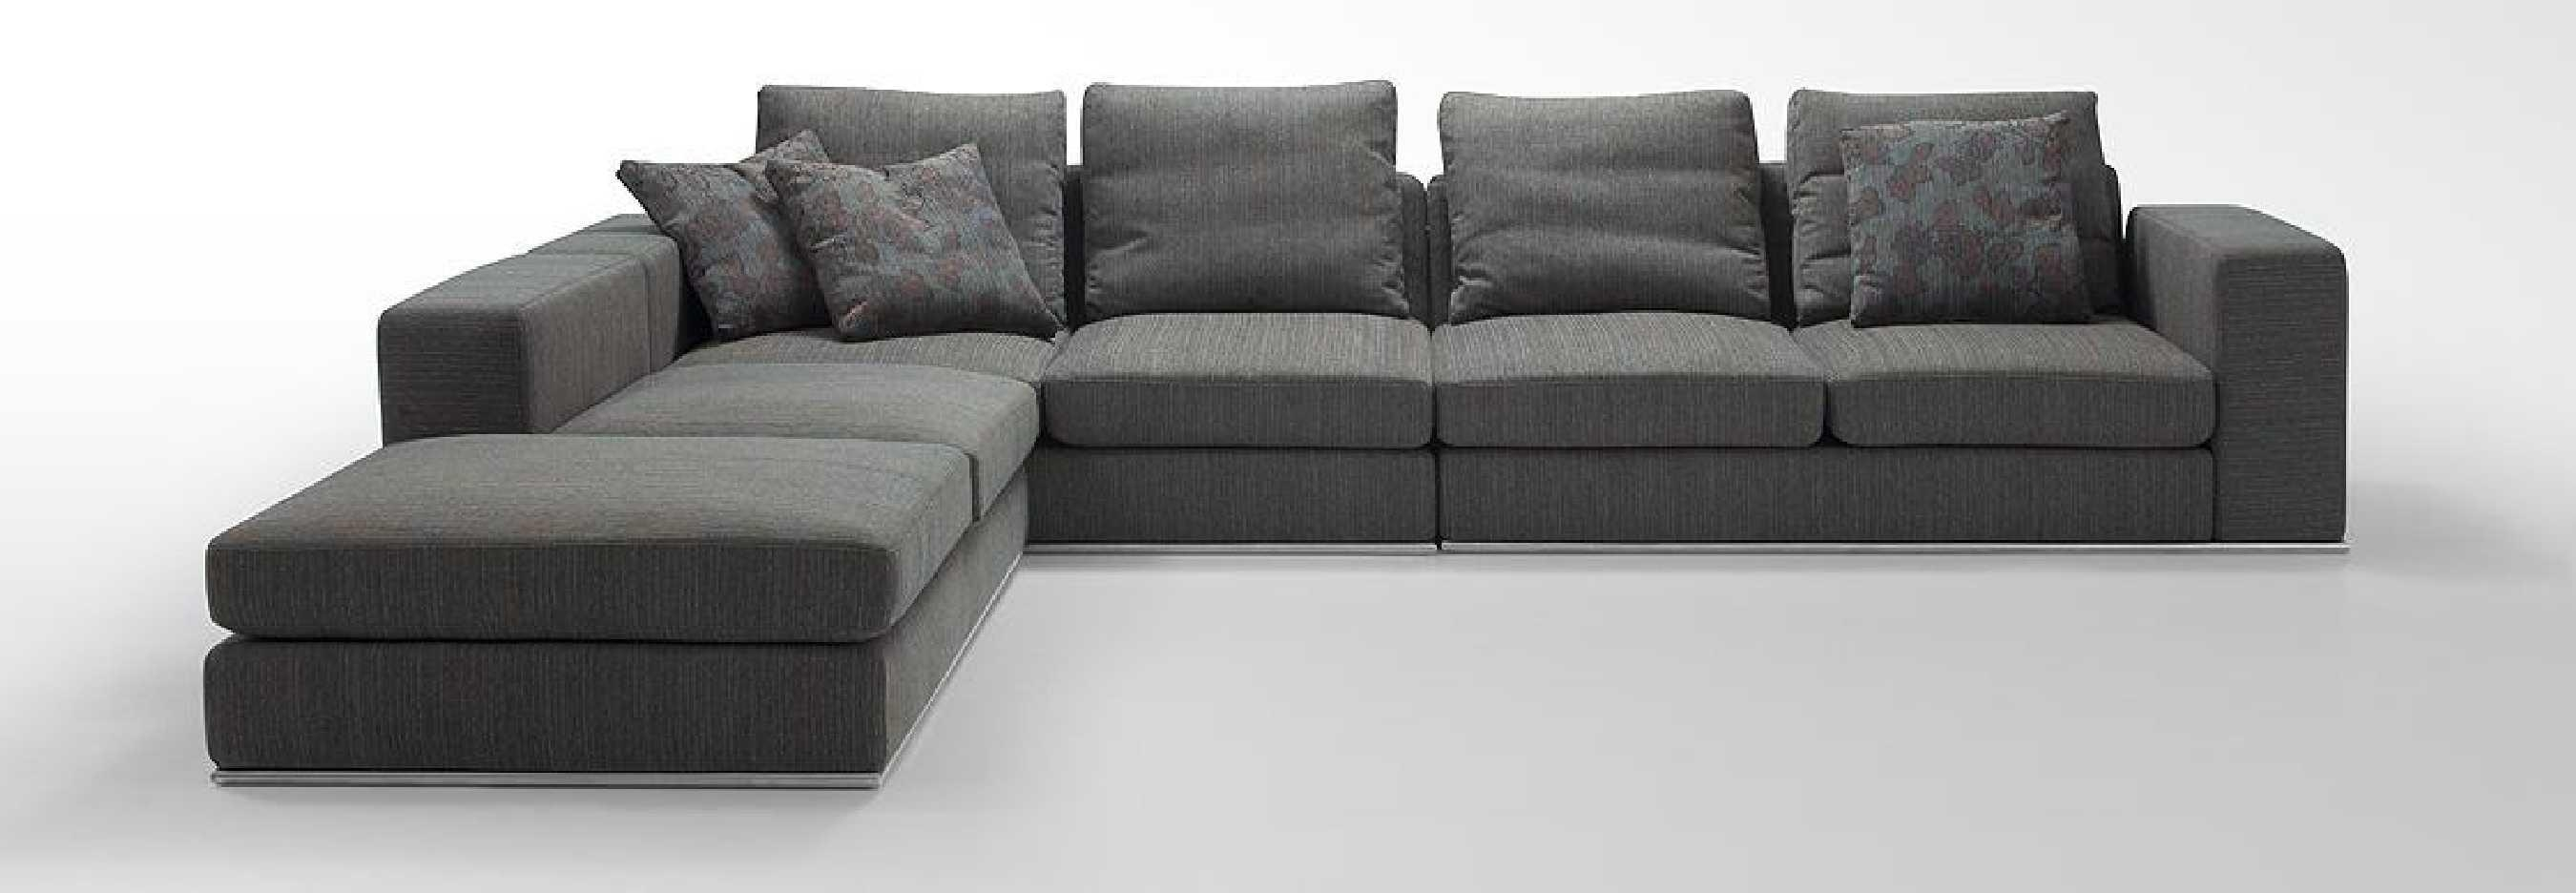 Cheapest Grey Sofa | Tehranmix Decoration Throughout Small Grey Sofas (Image 5 of 20)